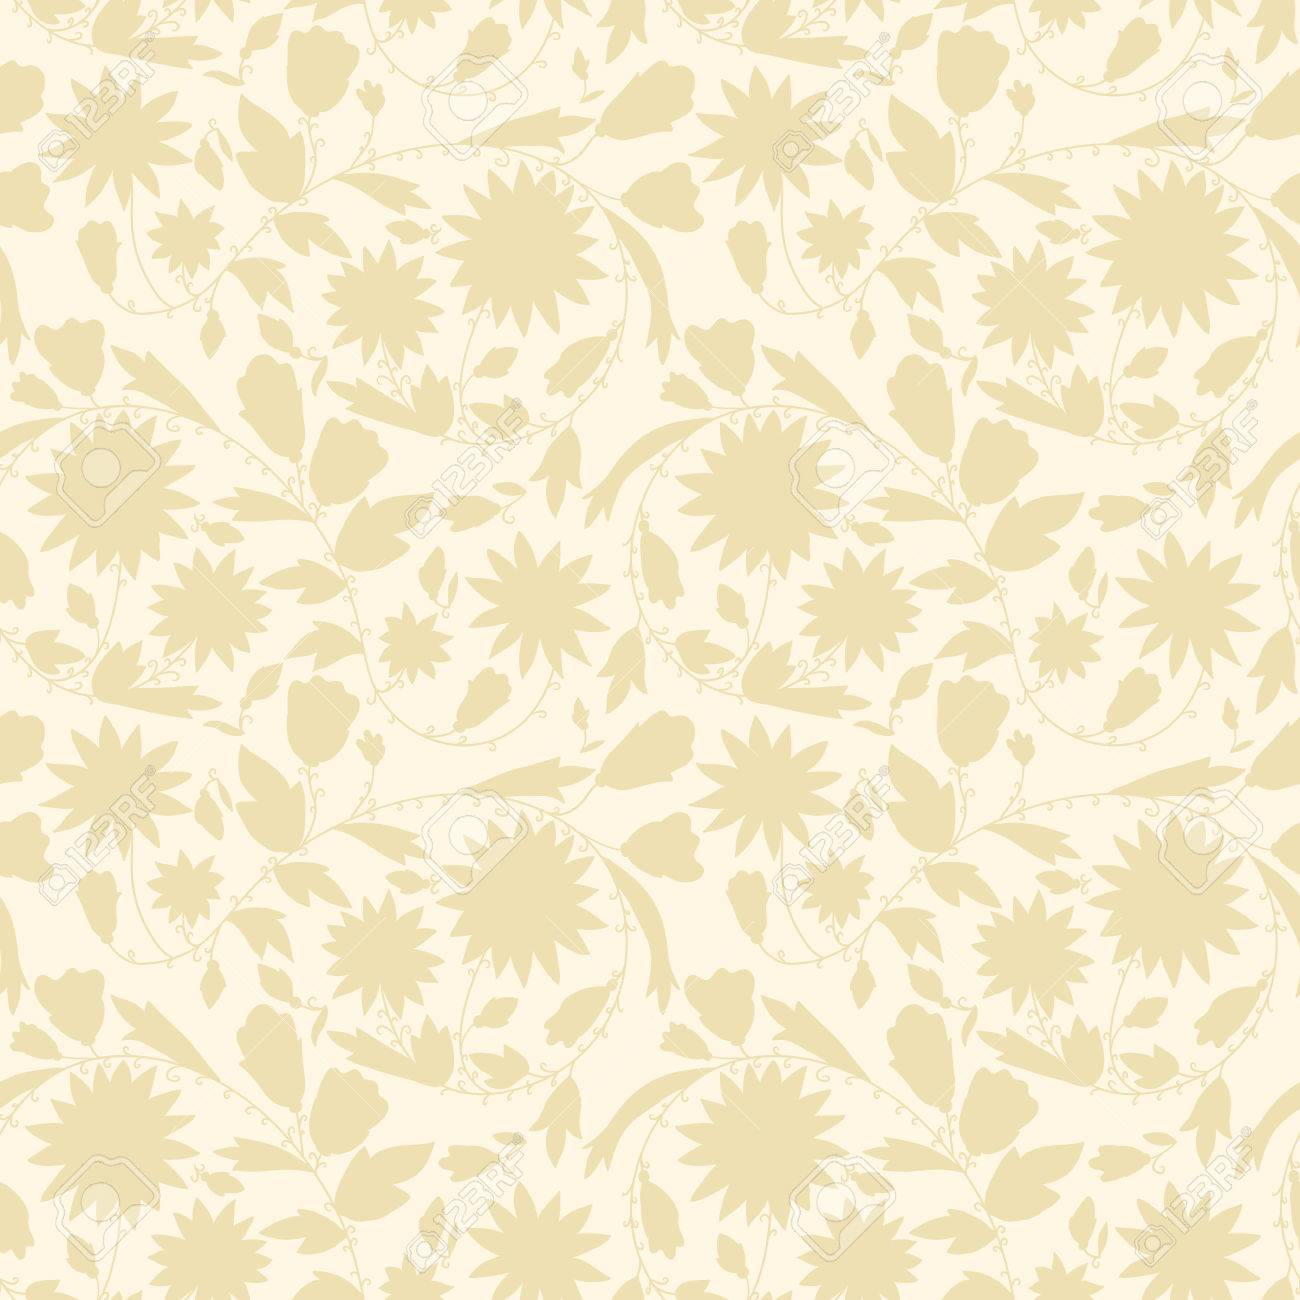 Neutral Floral Background Swirls And Curves Use As A Backdrop